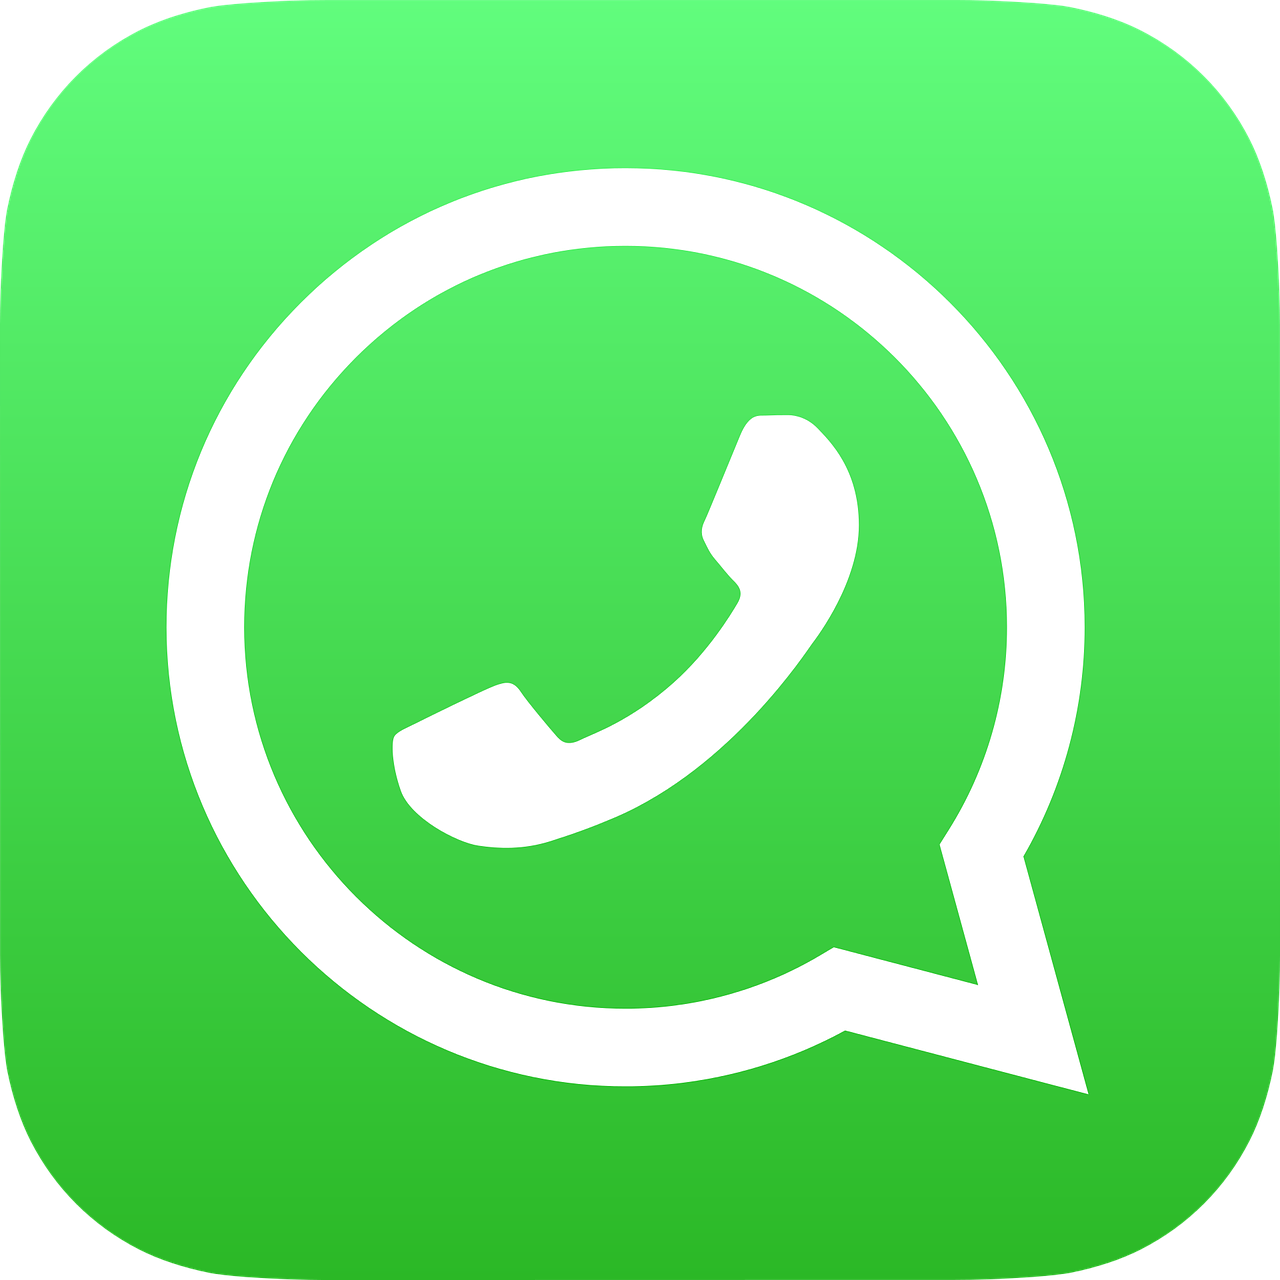 Download Messaging Whatsapp Apps Android Instant Free.